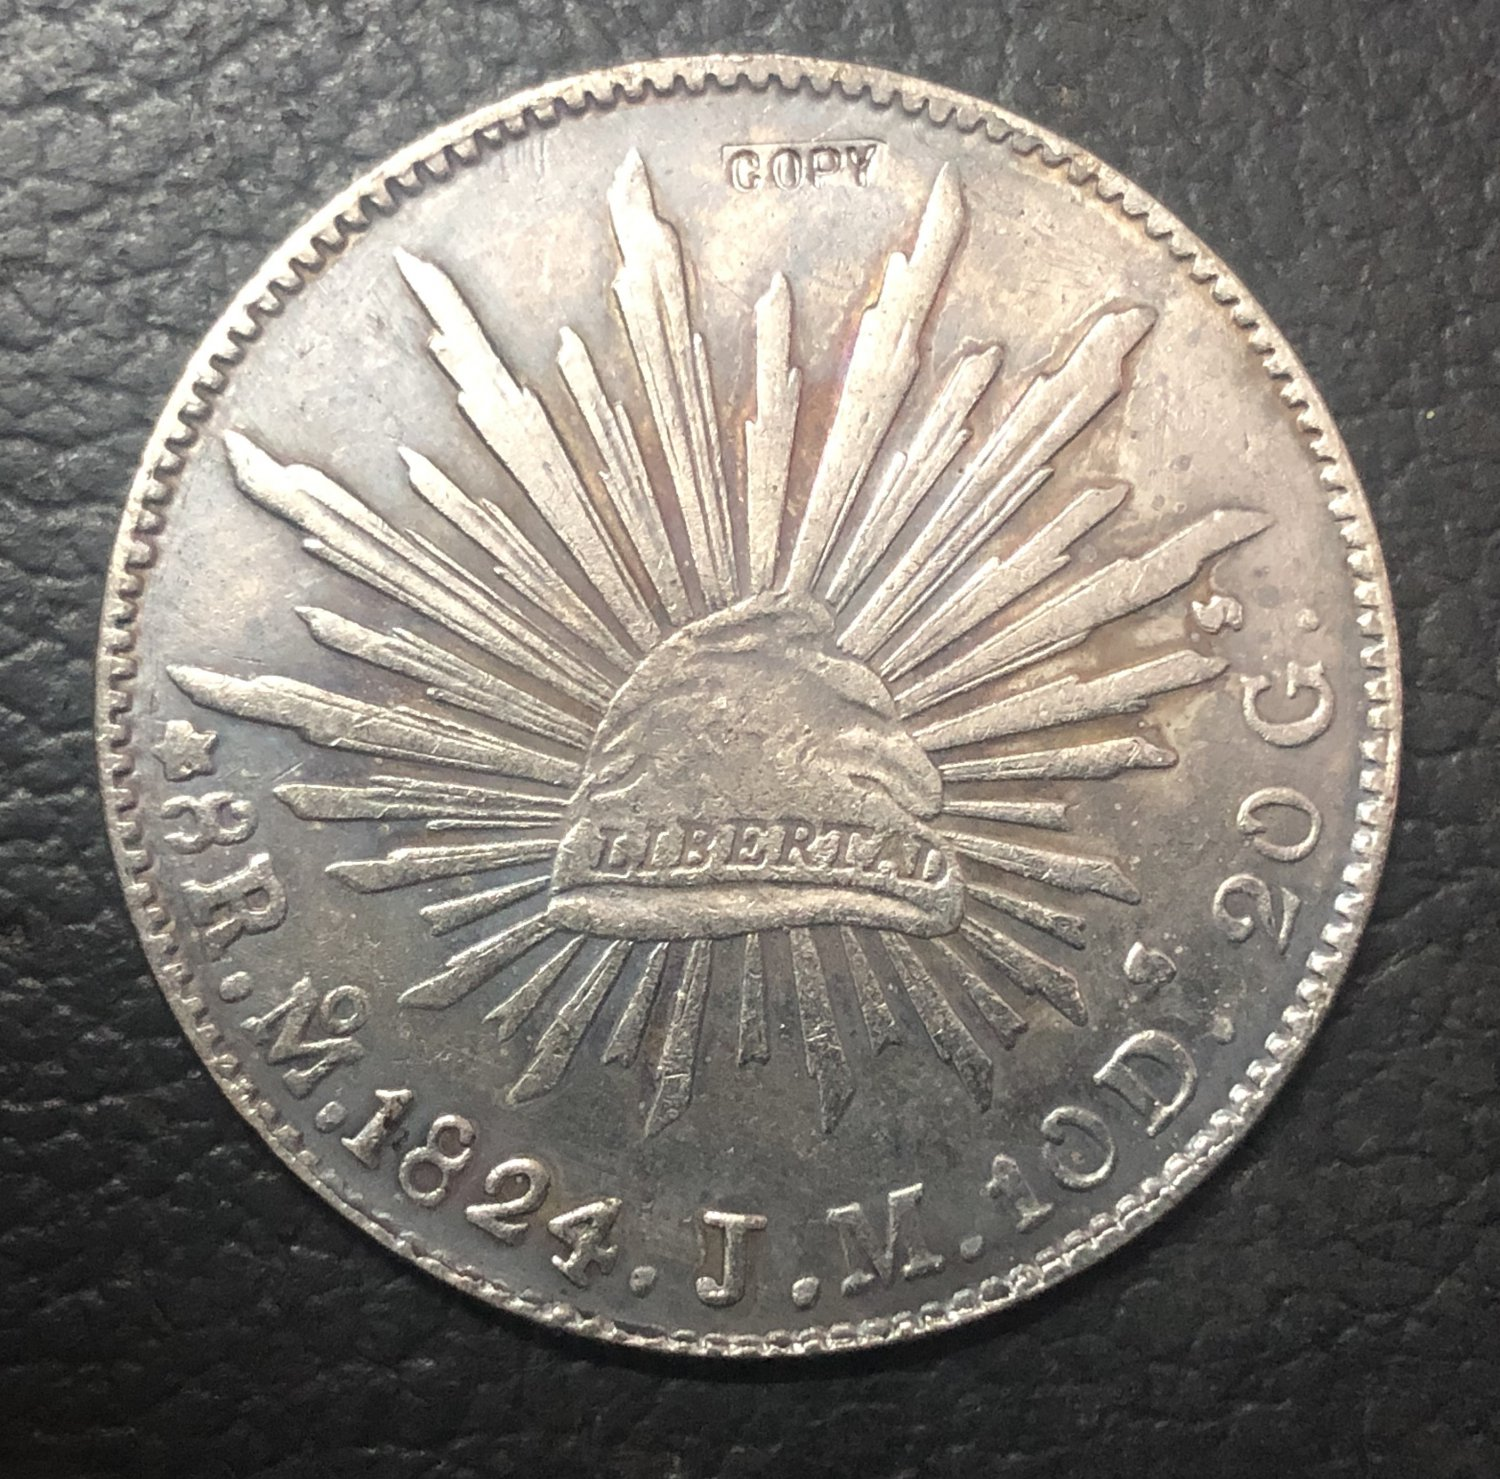 1824 Mexico 8 Reales Copy Coin